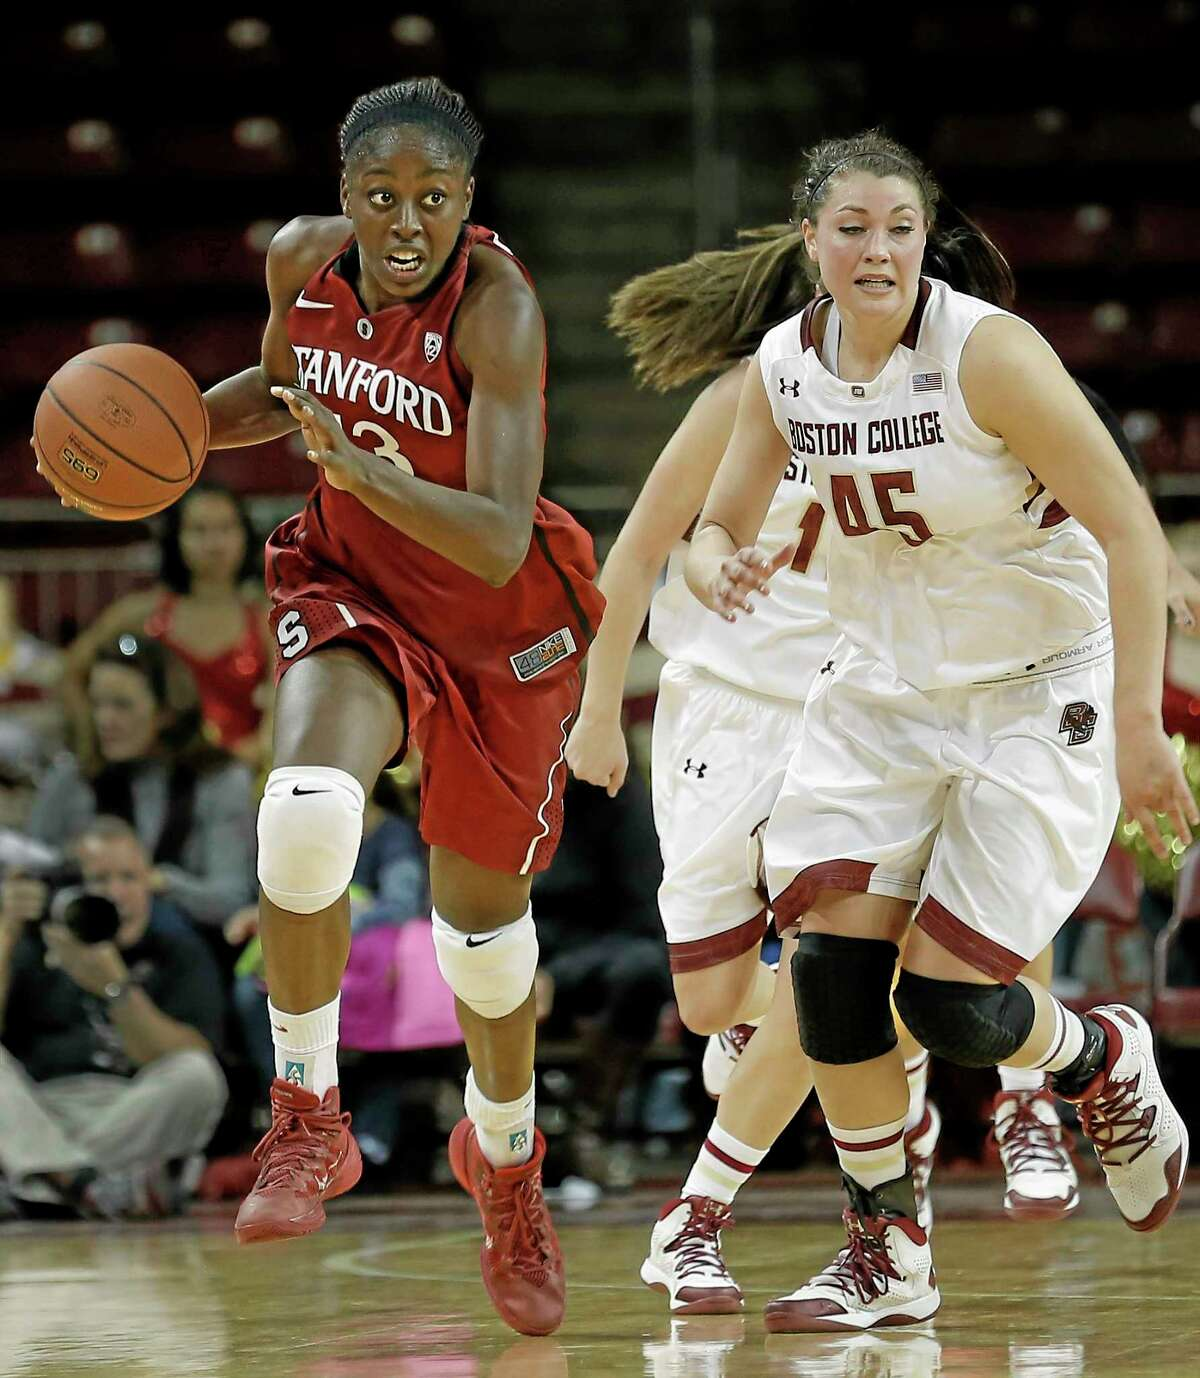 Stanford's Chiney Ogwumike sprints up court past Boston College's Katie Zenevitch during their game on Saturday.